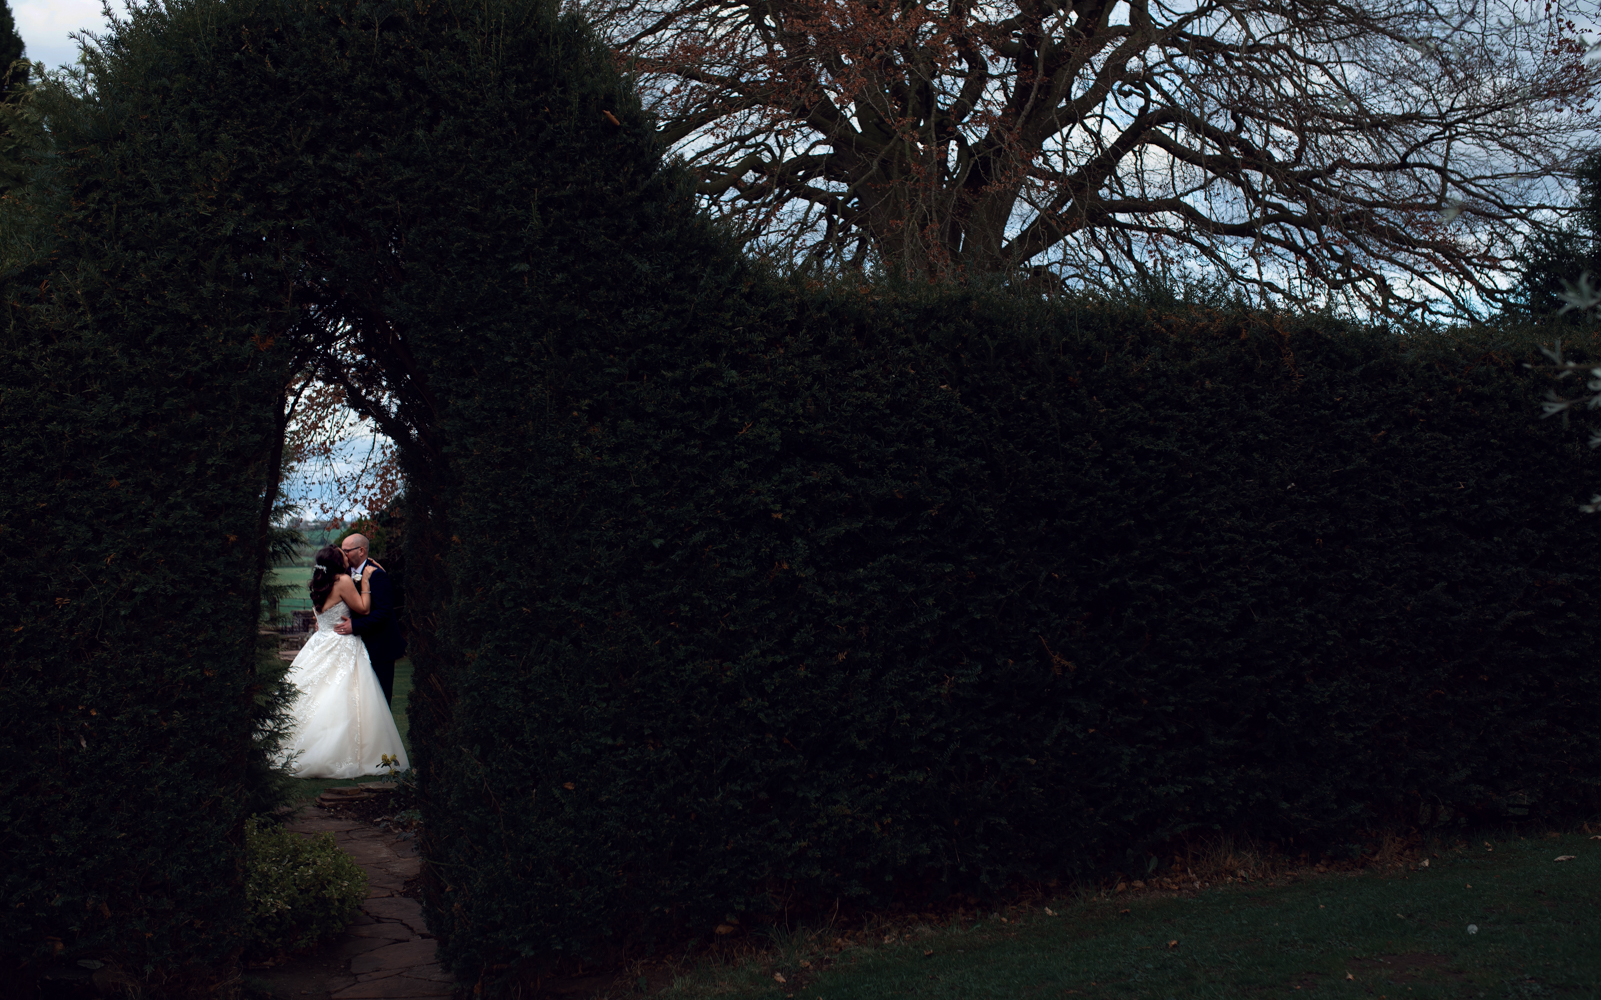 The bride and groom through a gap in the hedge during couples portrait session